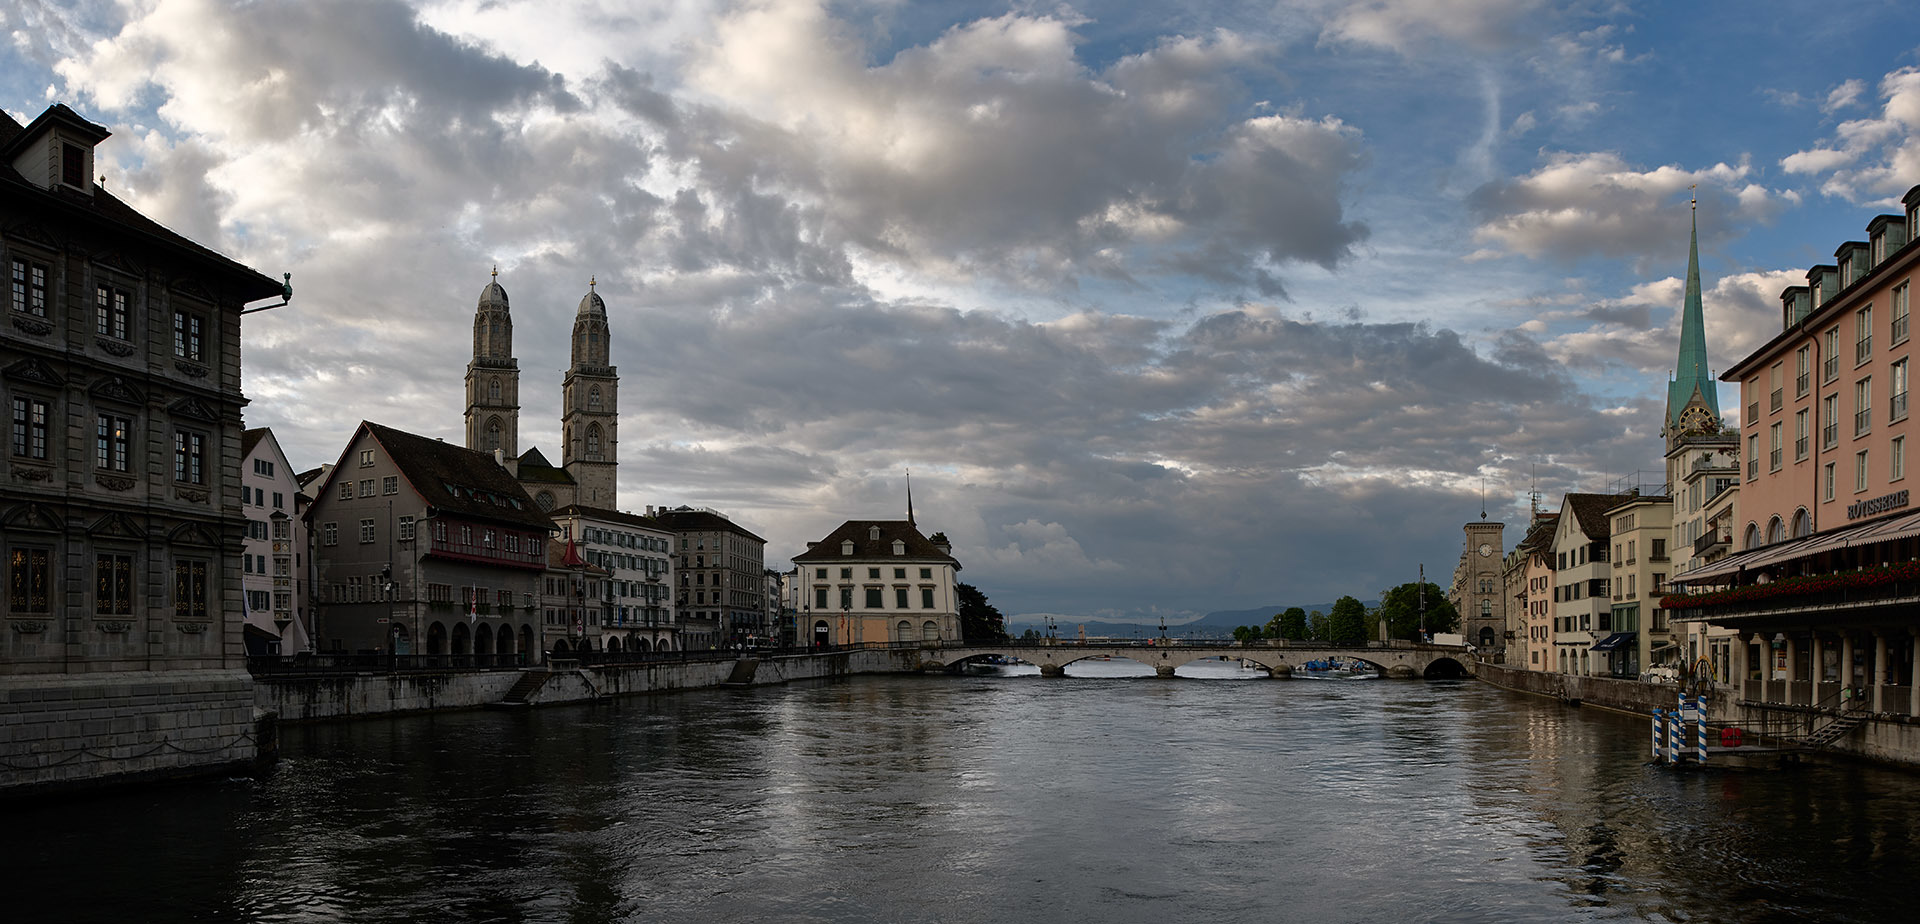 Cloudy sky over old city and river